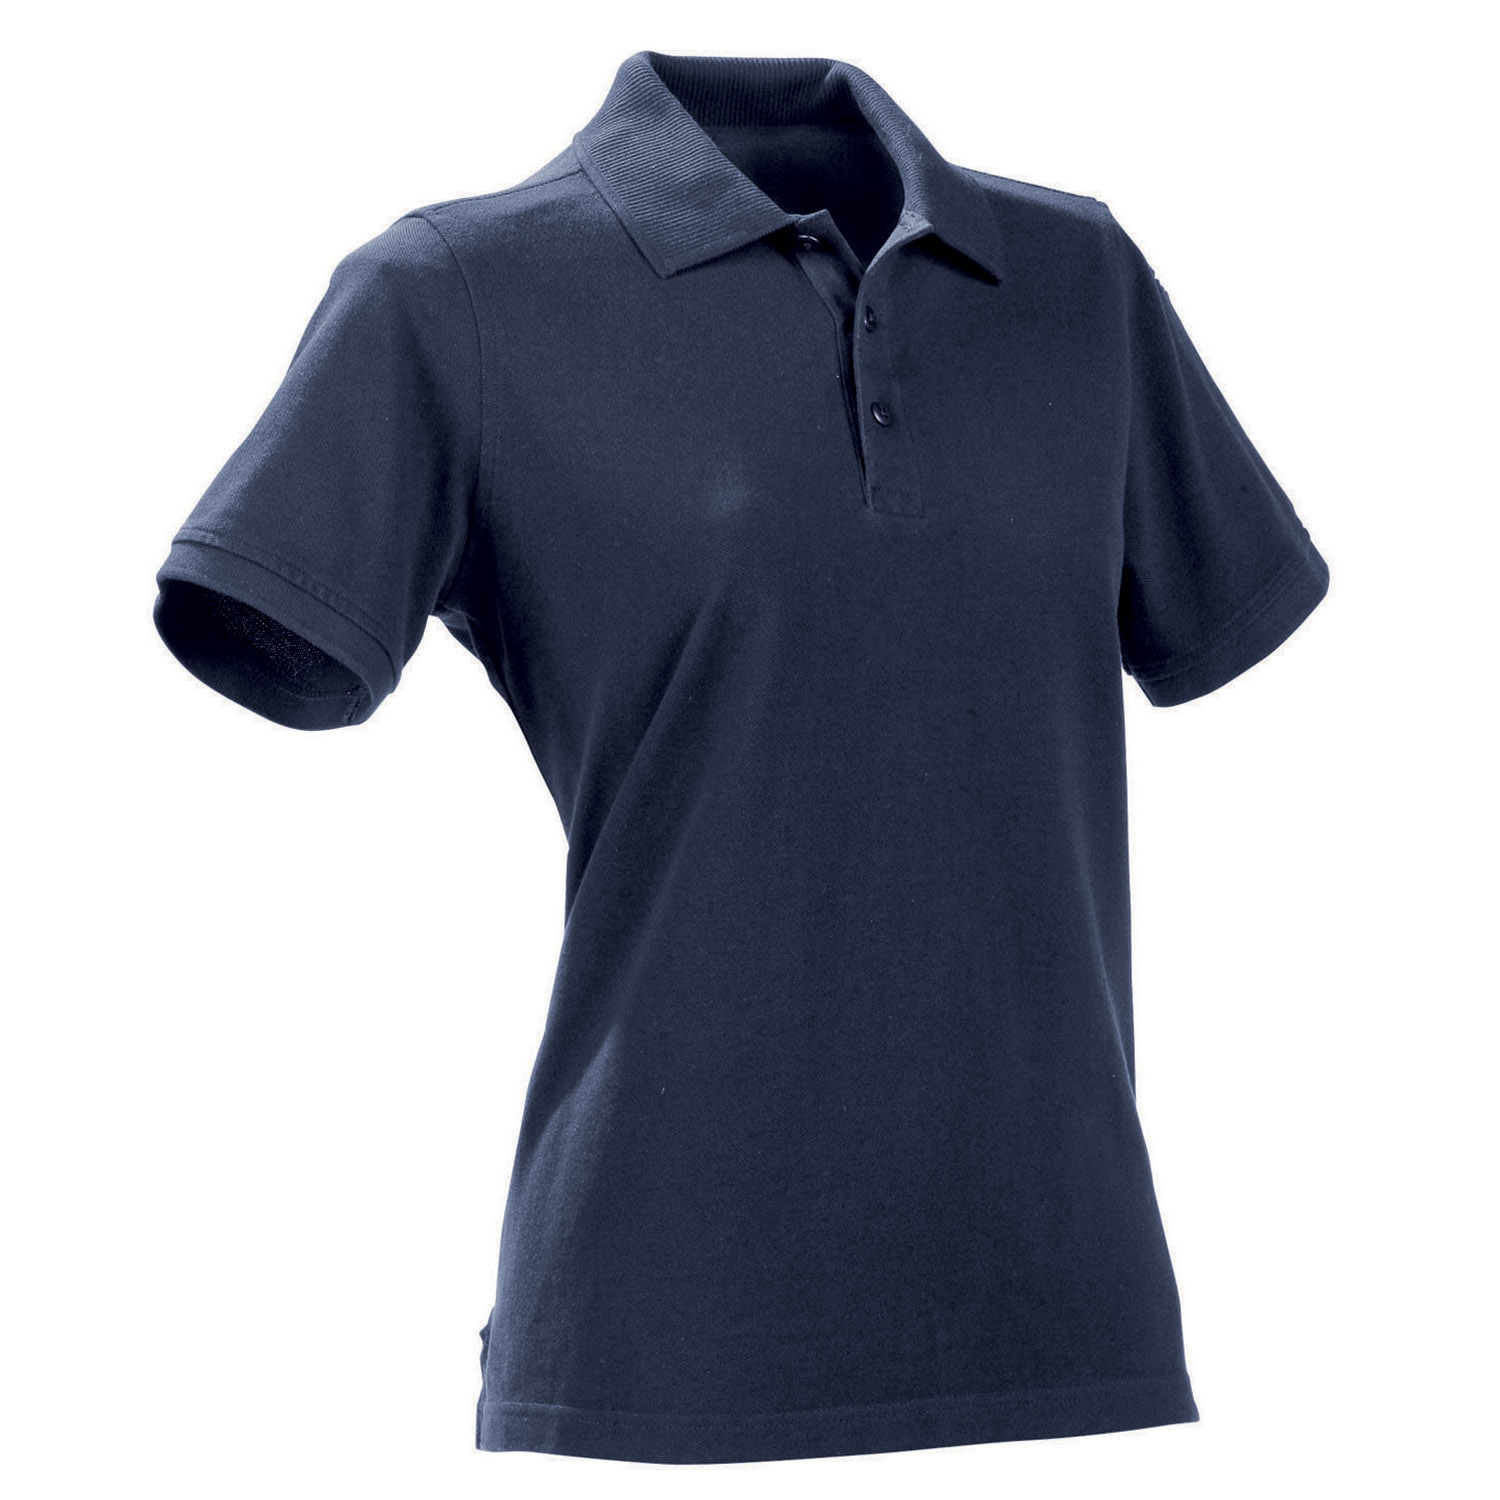 5.11 Tactical Utility Women's Short Sleeve Polo